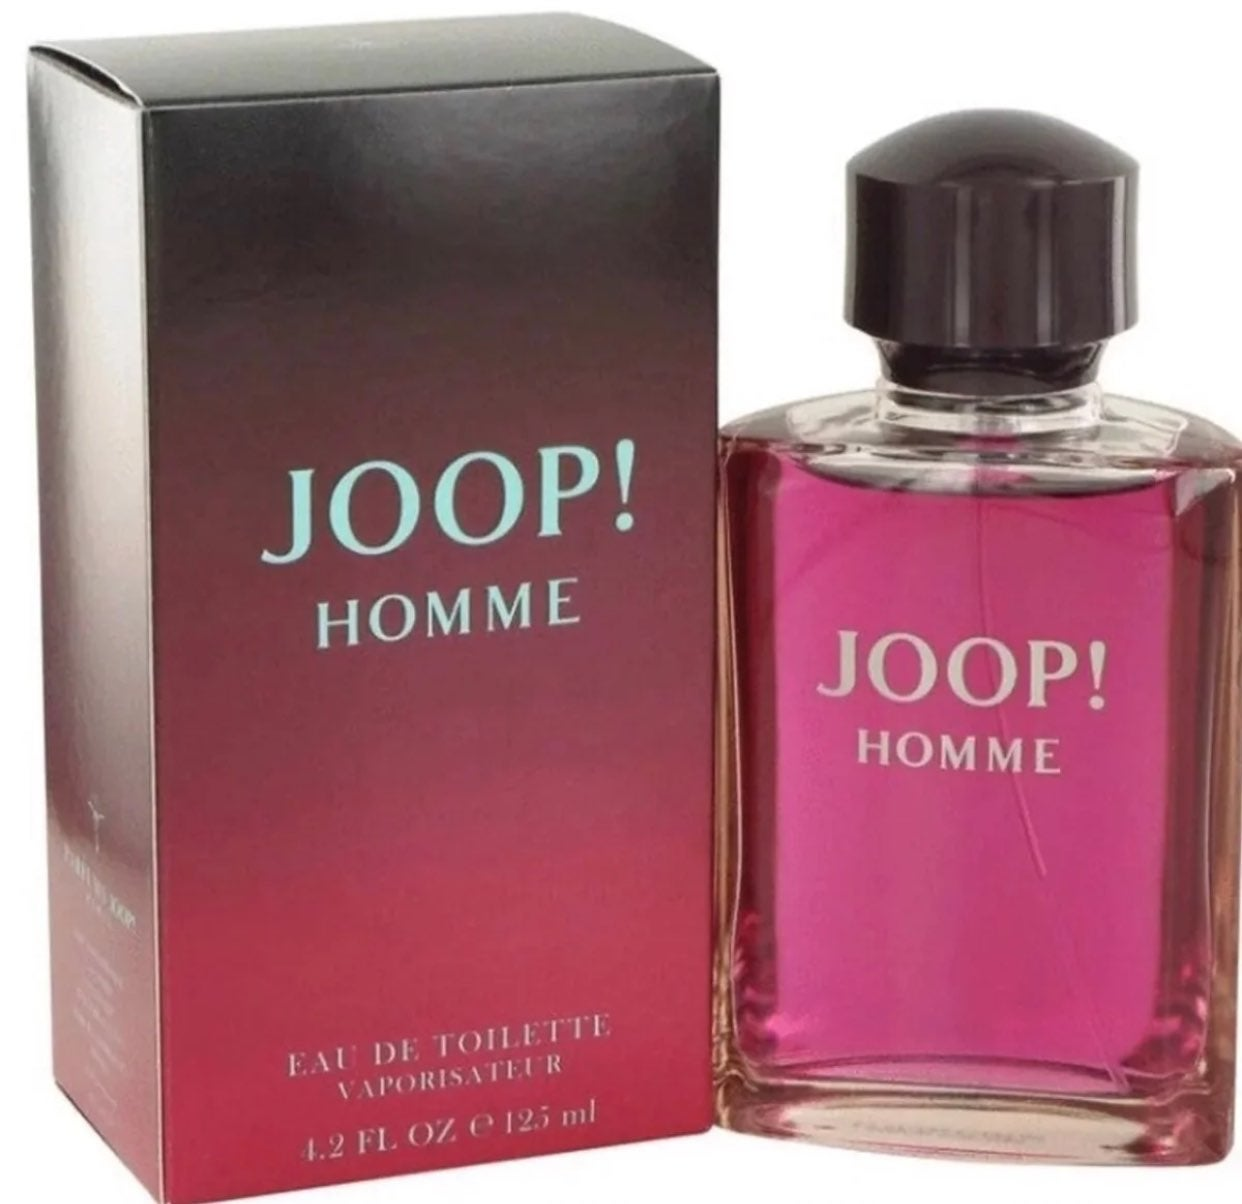 Joop! Homme 4.2 oz. EDT Cologne for Men